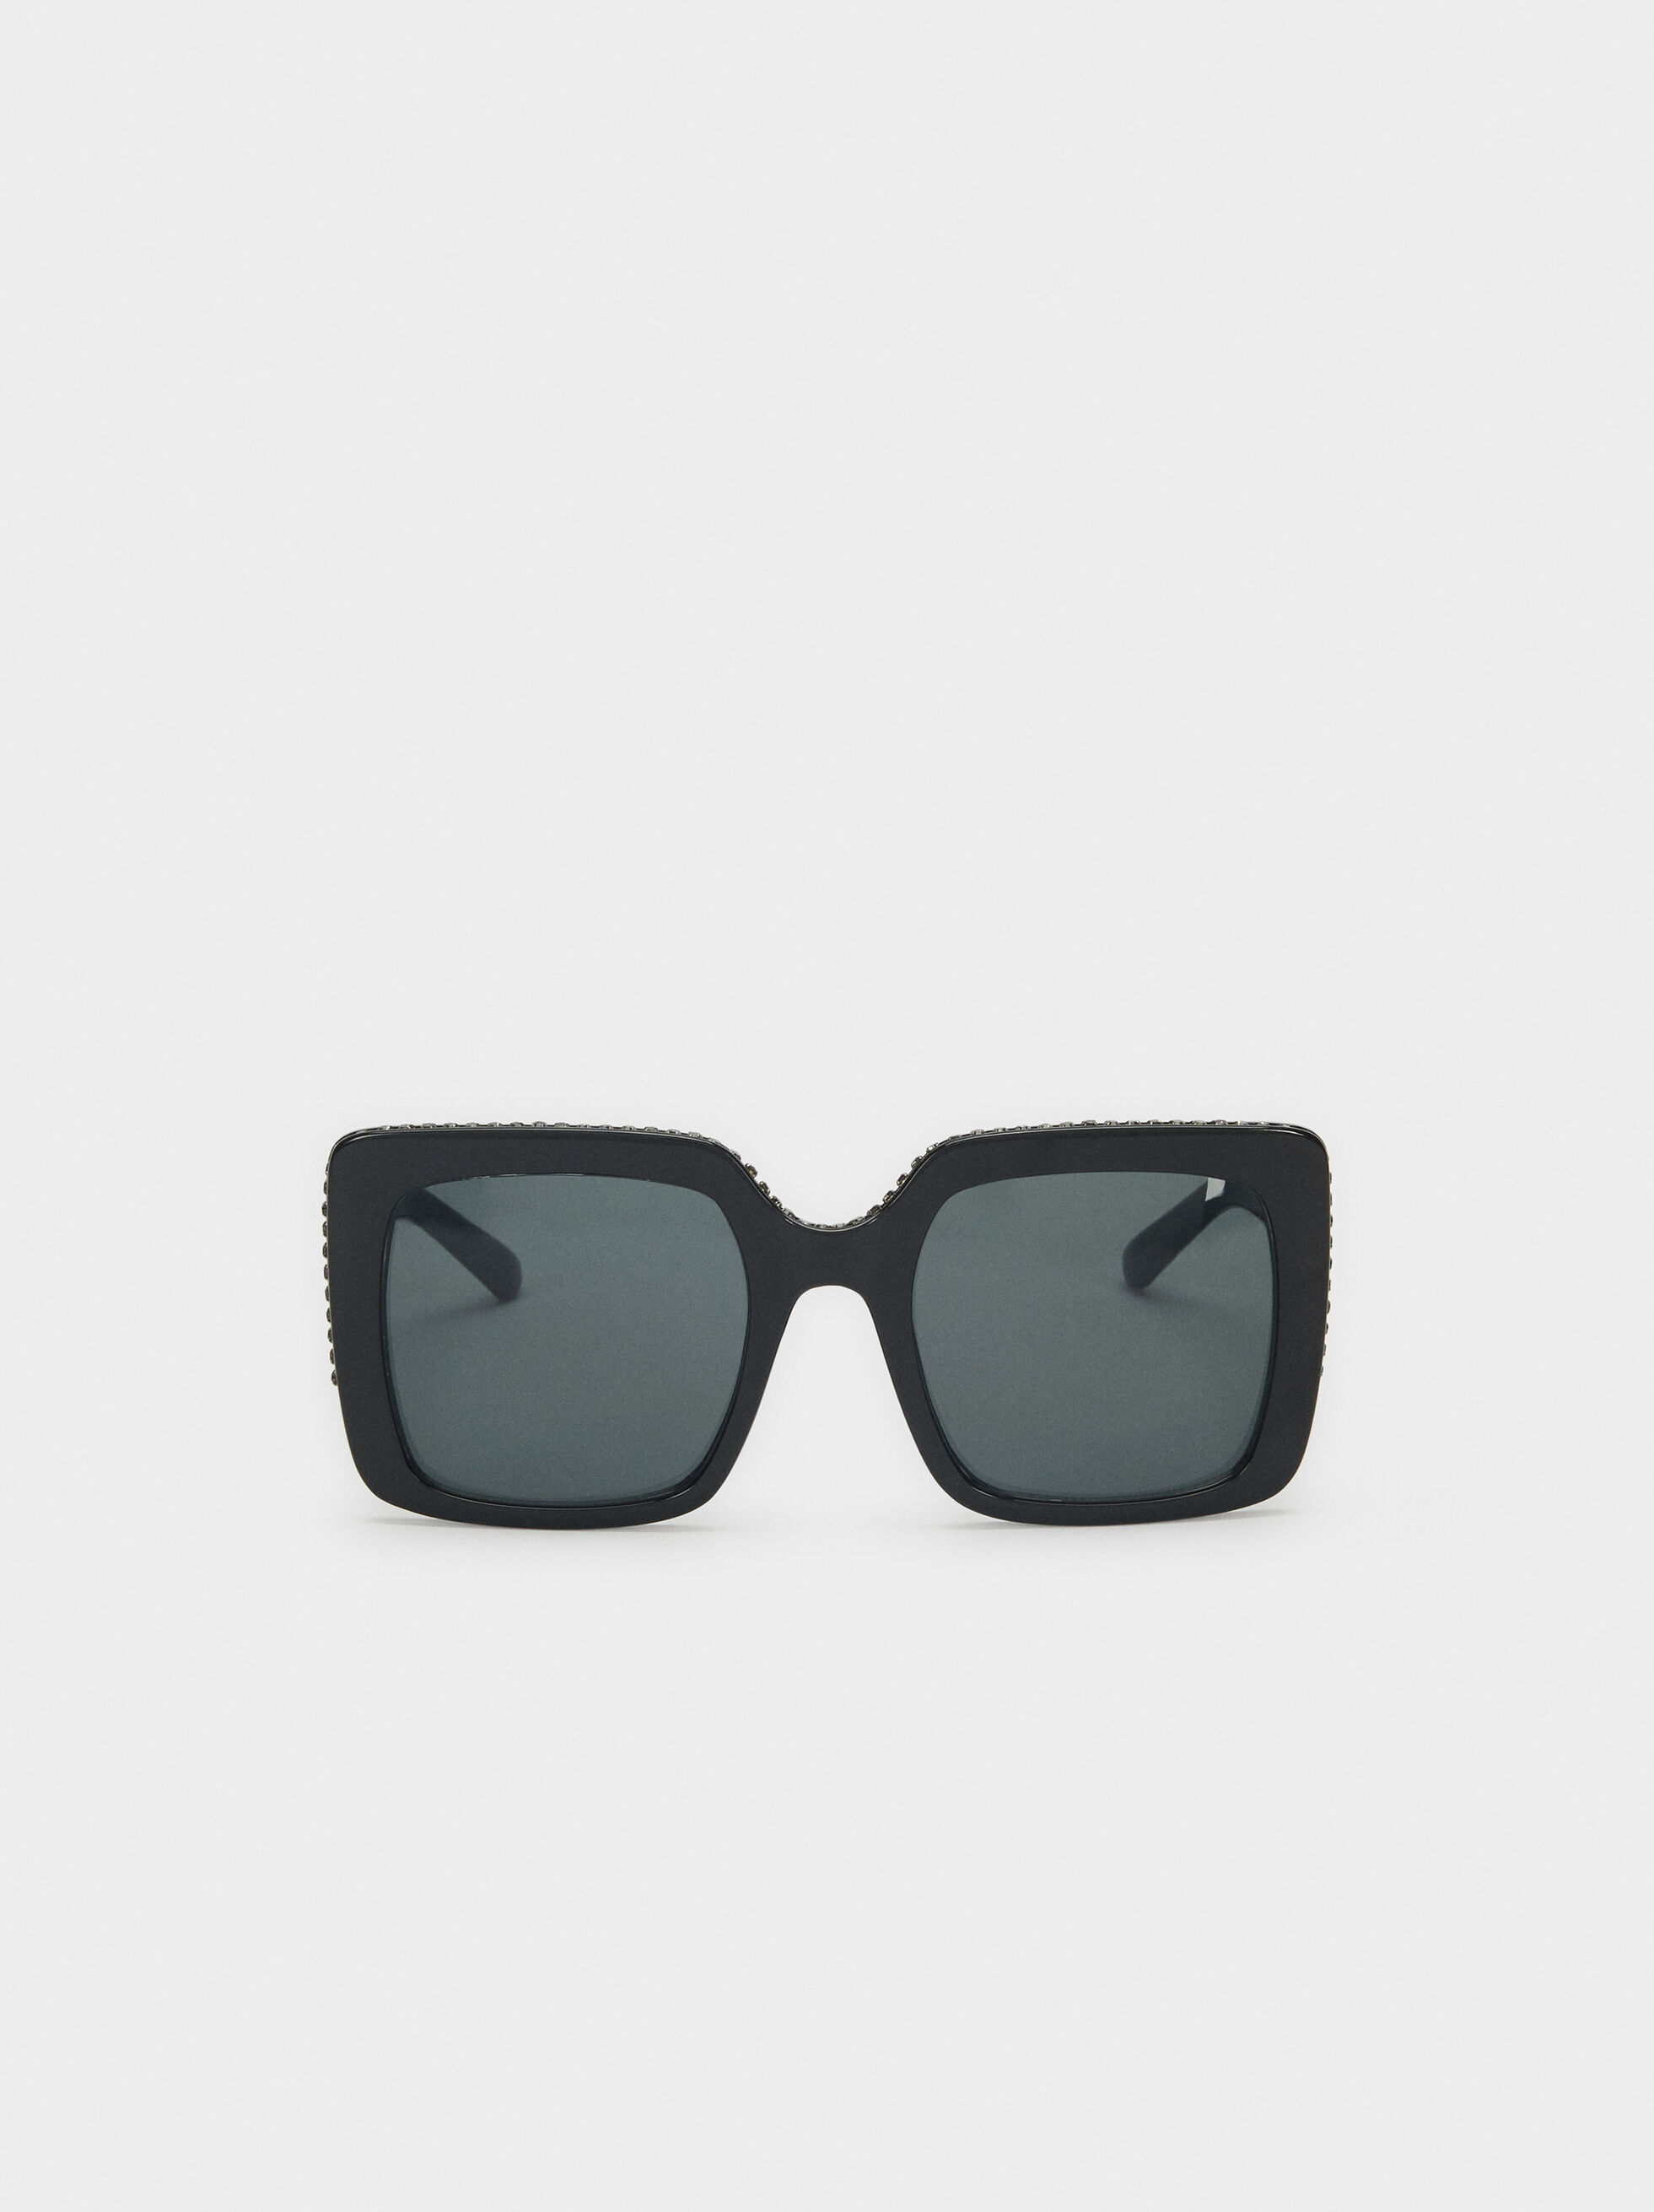 Squared Plastic Sunglasses, Black, hi-res